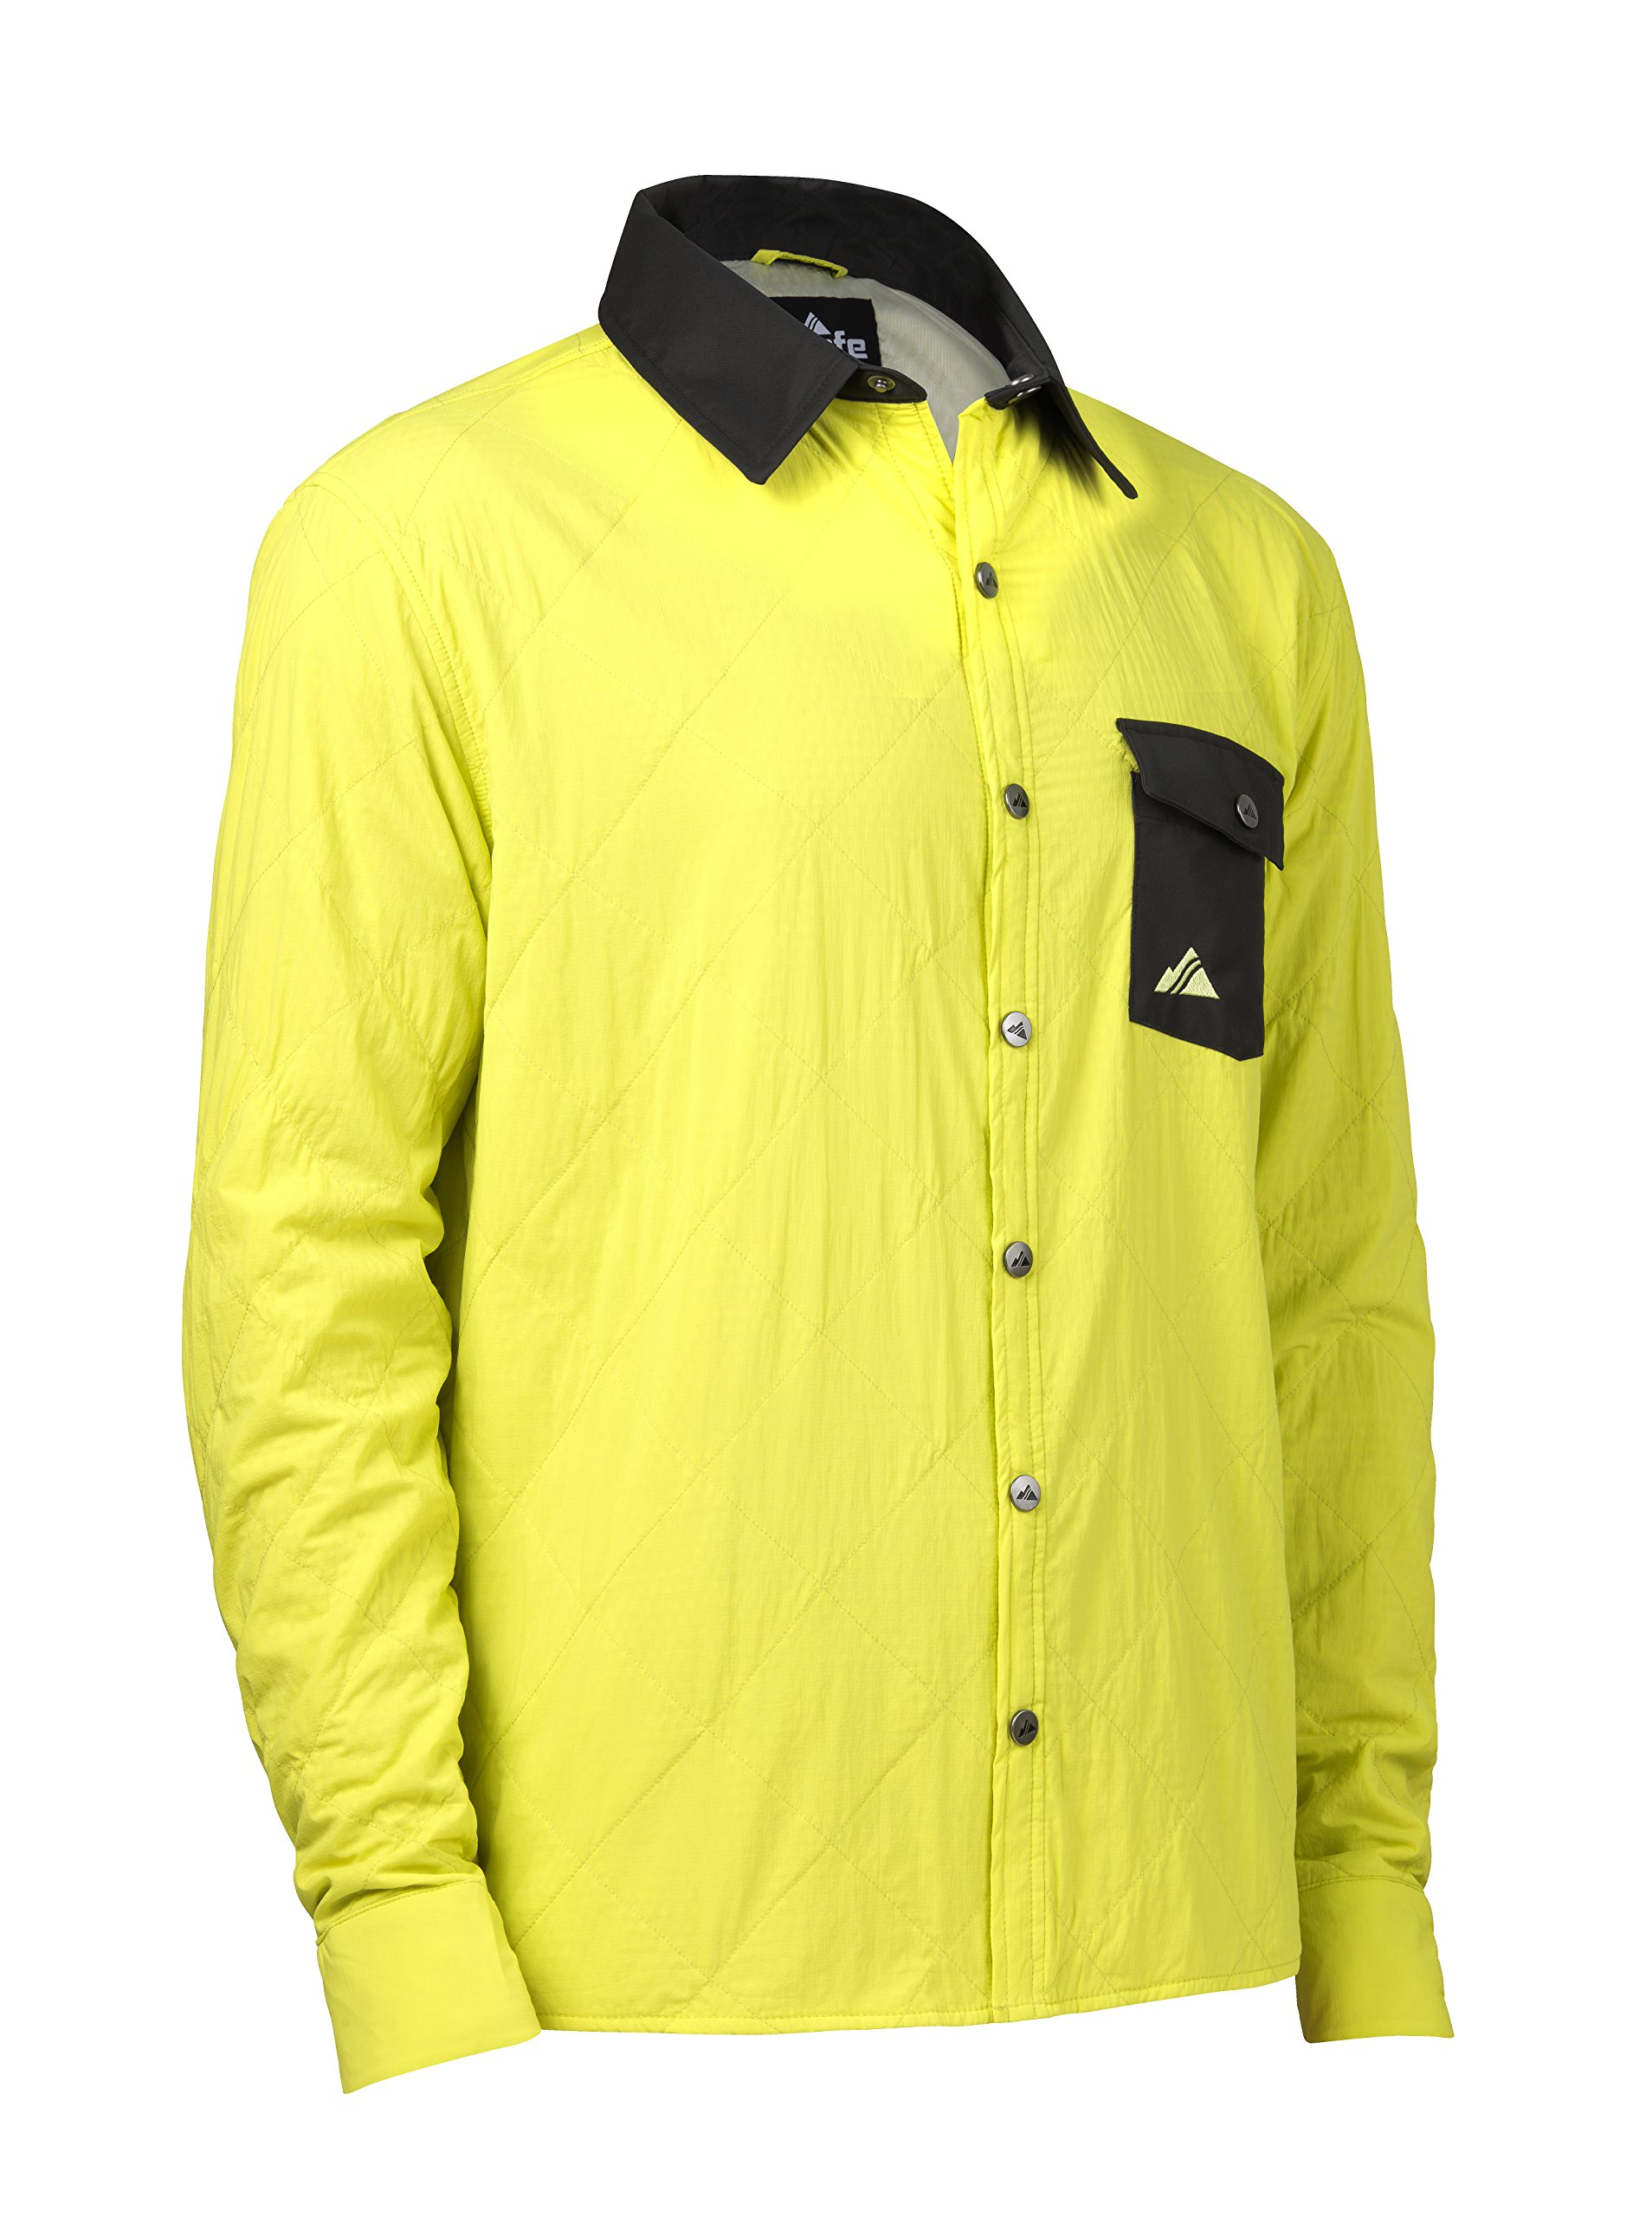 Strafe Outerwear Alpha Shirt Jacket, X-Large, Sulphur Spring by Strafe